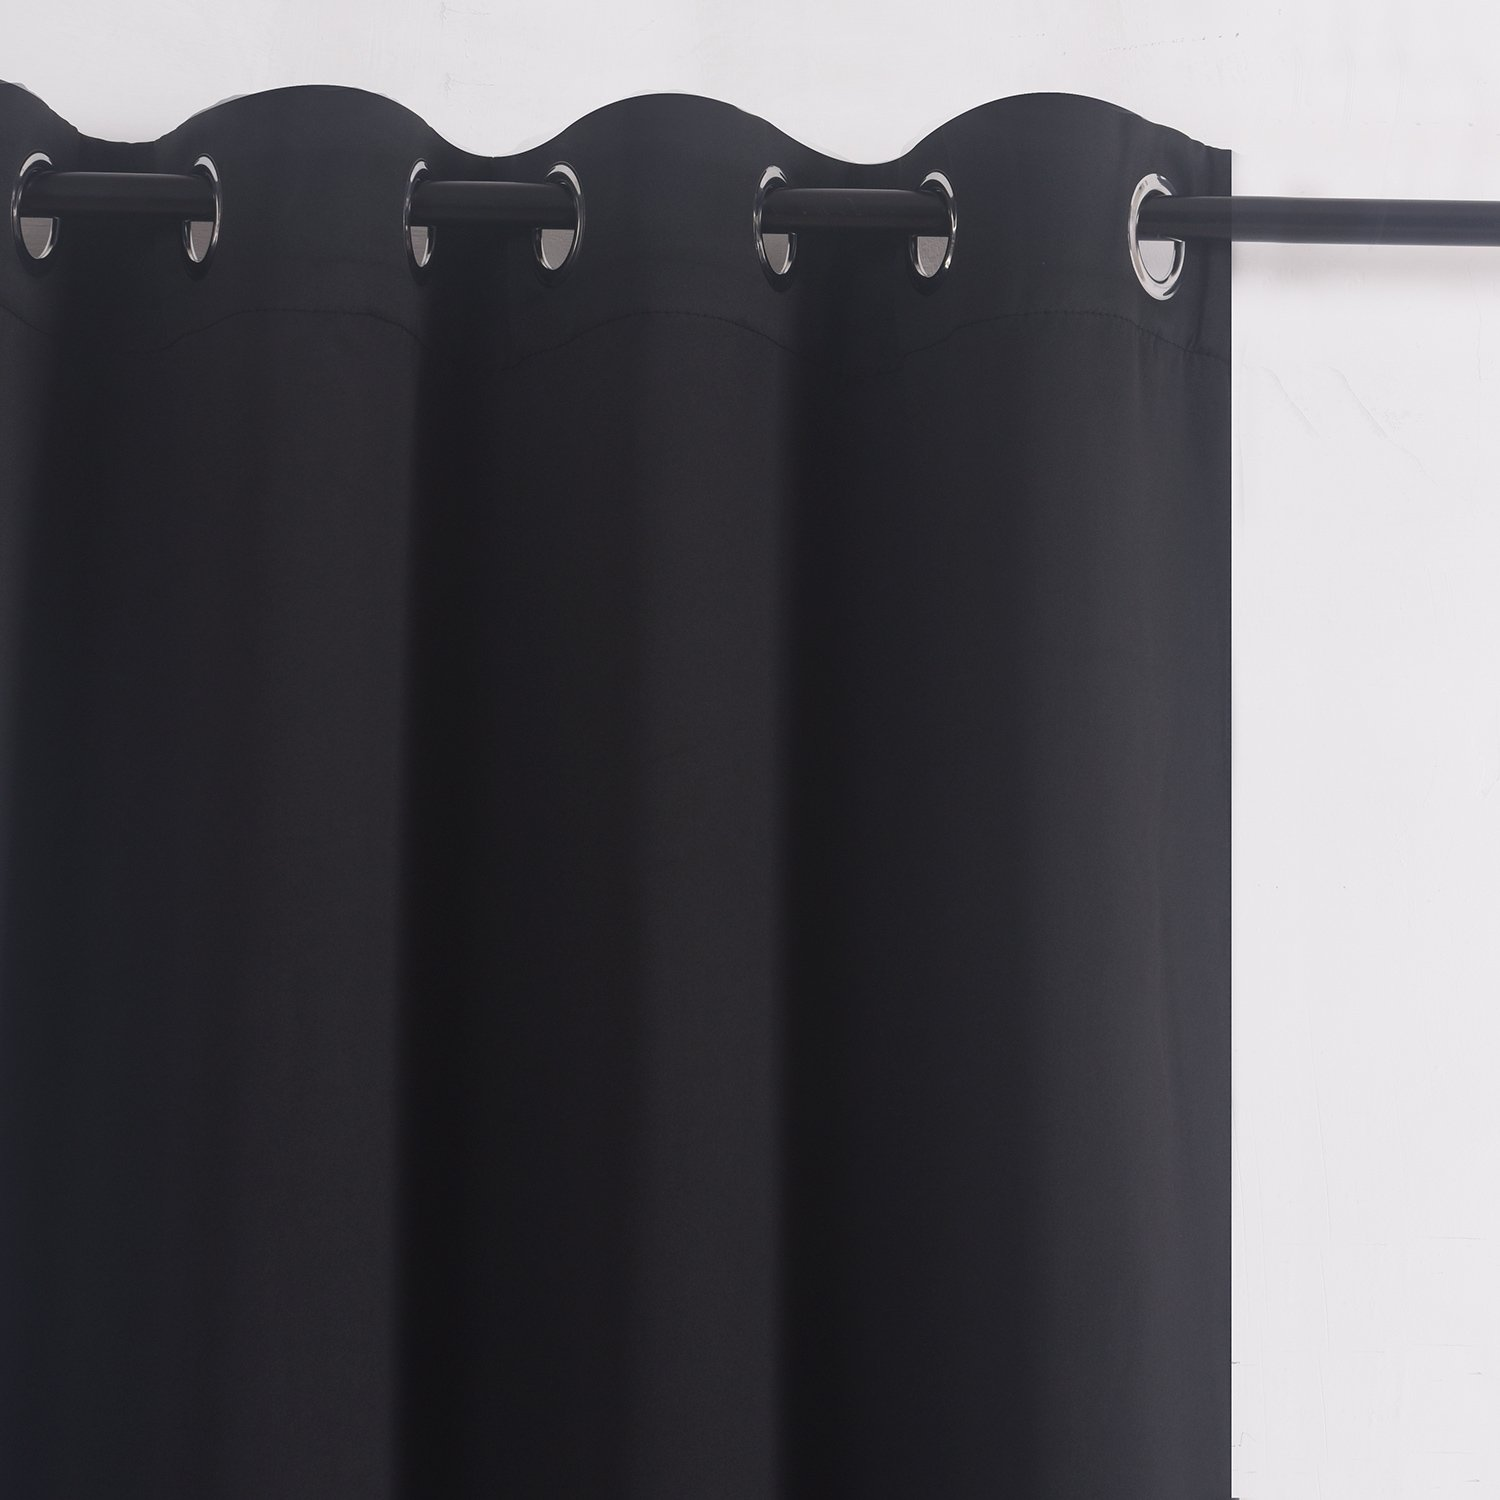 Blackout Curtain Panels for Bedroom Windows - Aquazolax Thermal Insulated Grommet Top Blackout Draperies Black